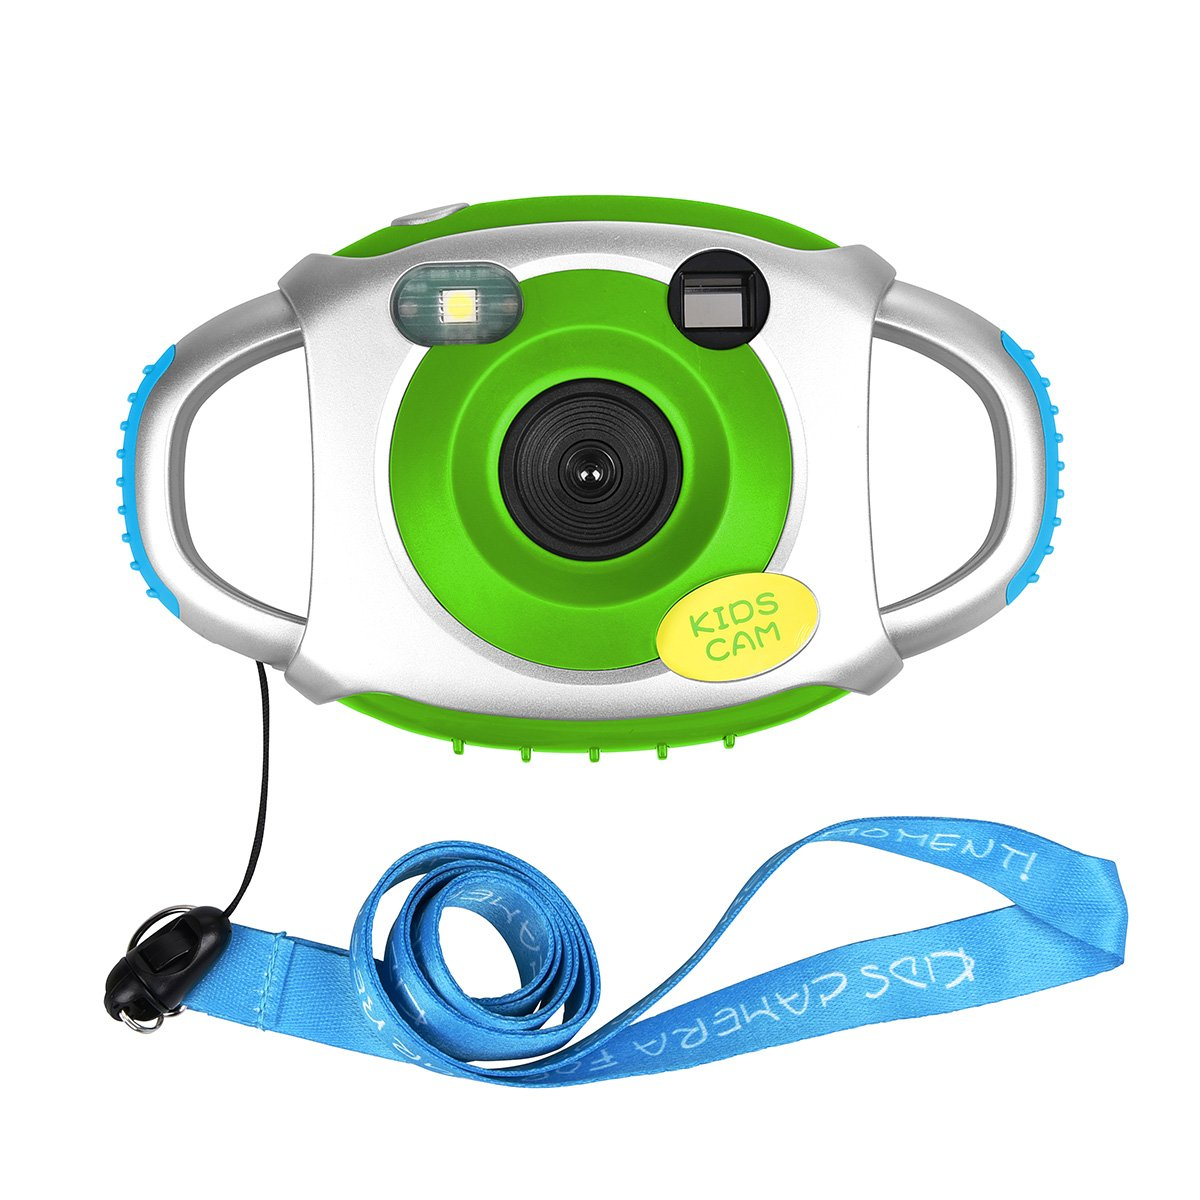 Tyhbelle Kids Camera for boys girls cam for kids Creative Lightweight Digital Camera for Kids with Soft Silicone Protective Shell (Green,without card)